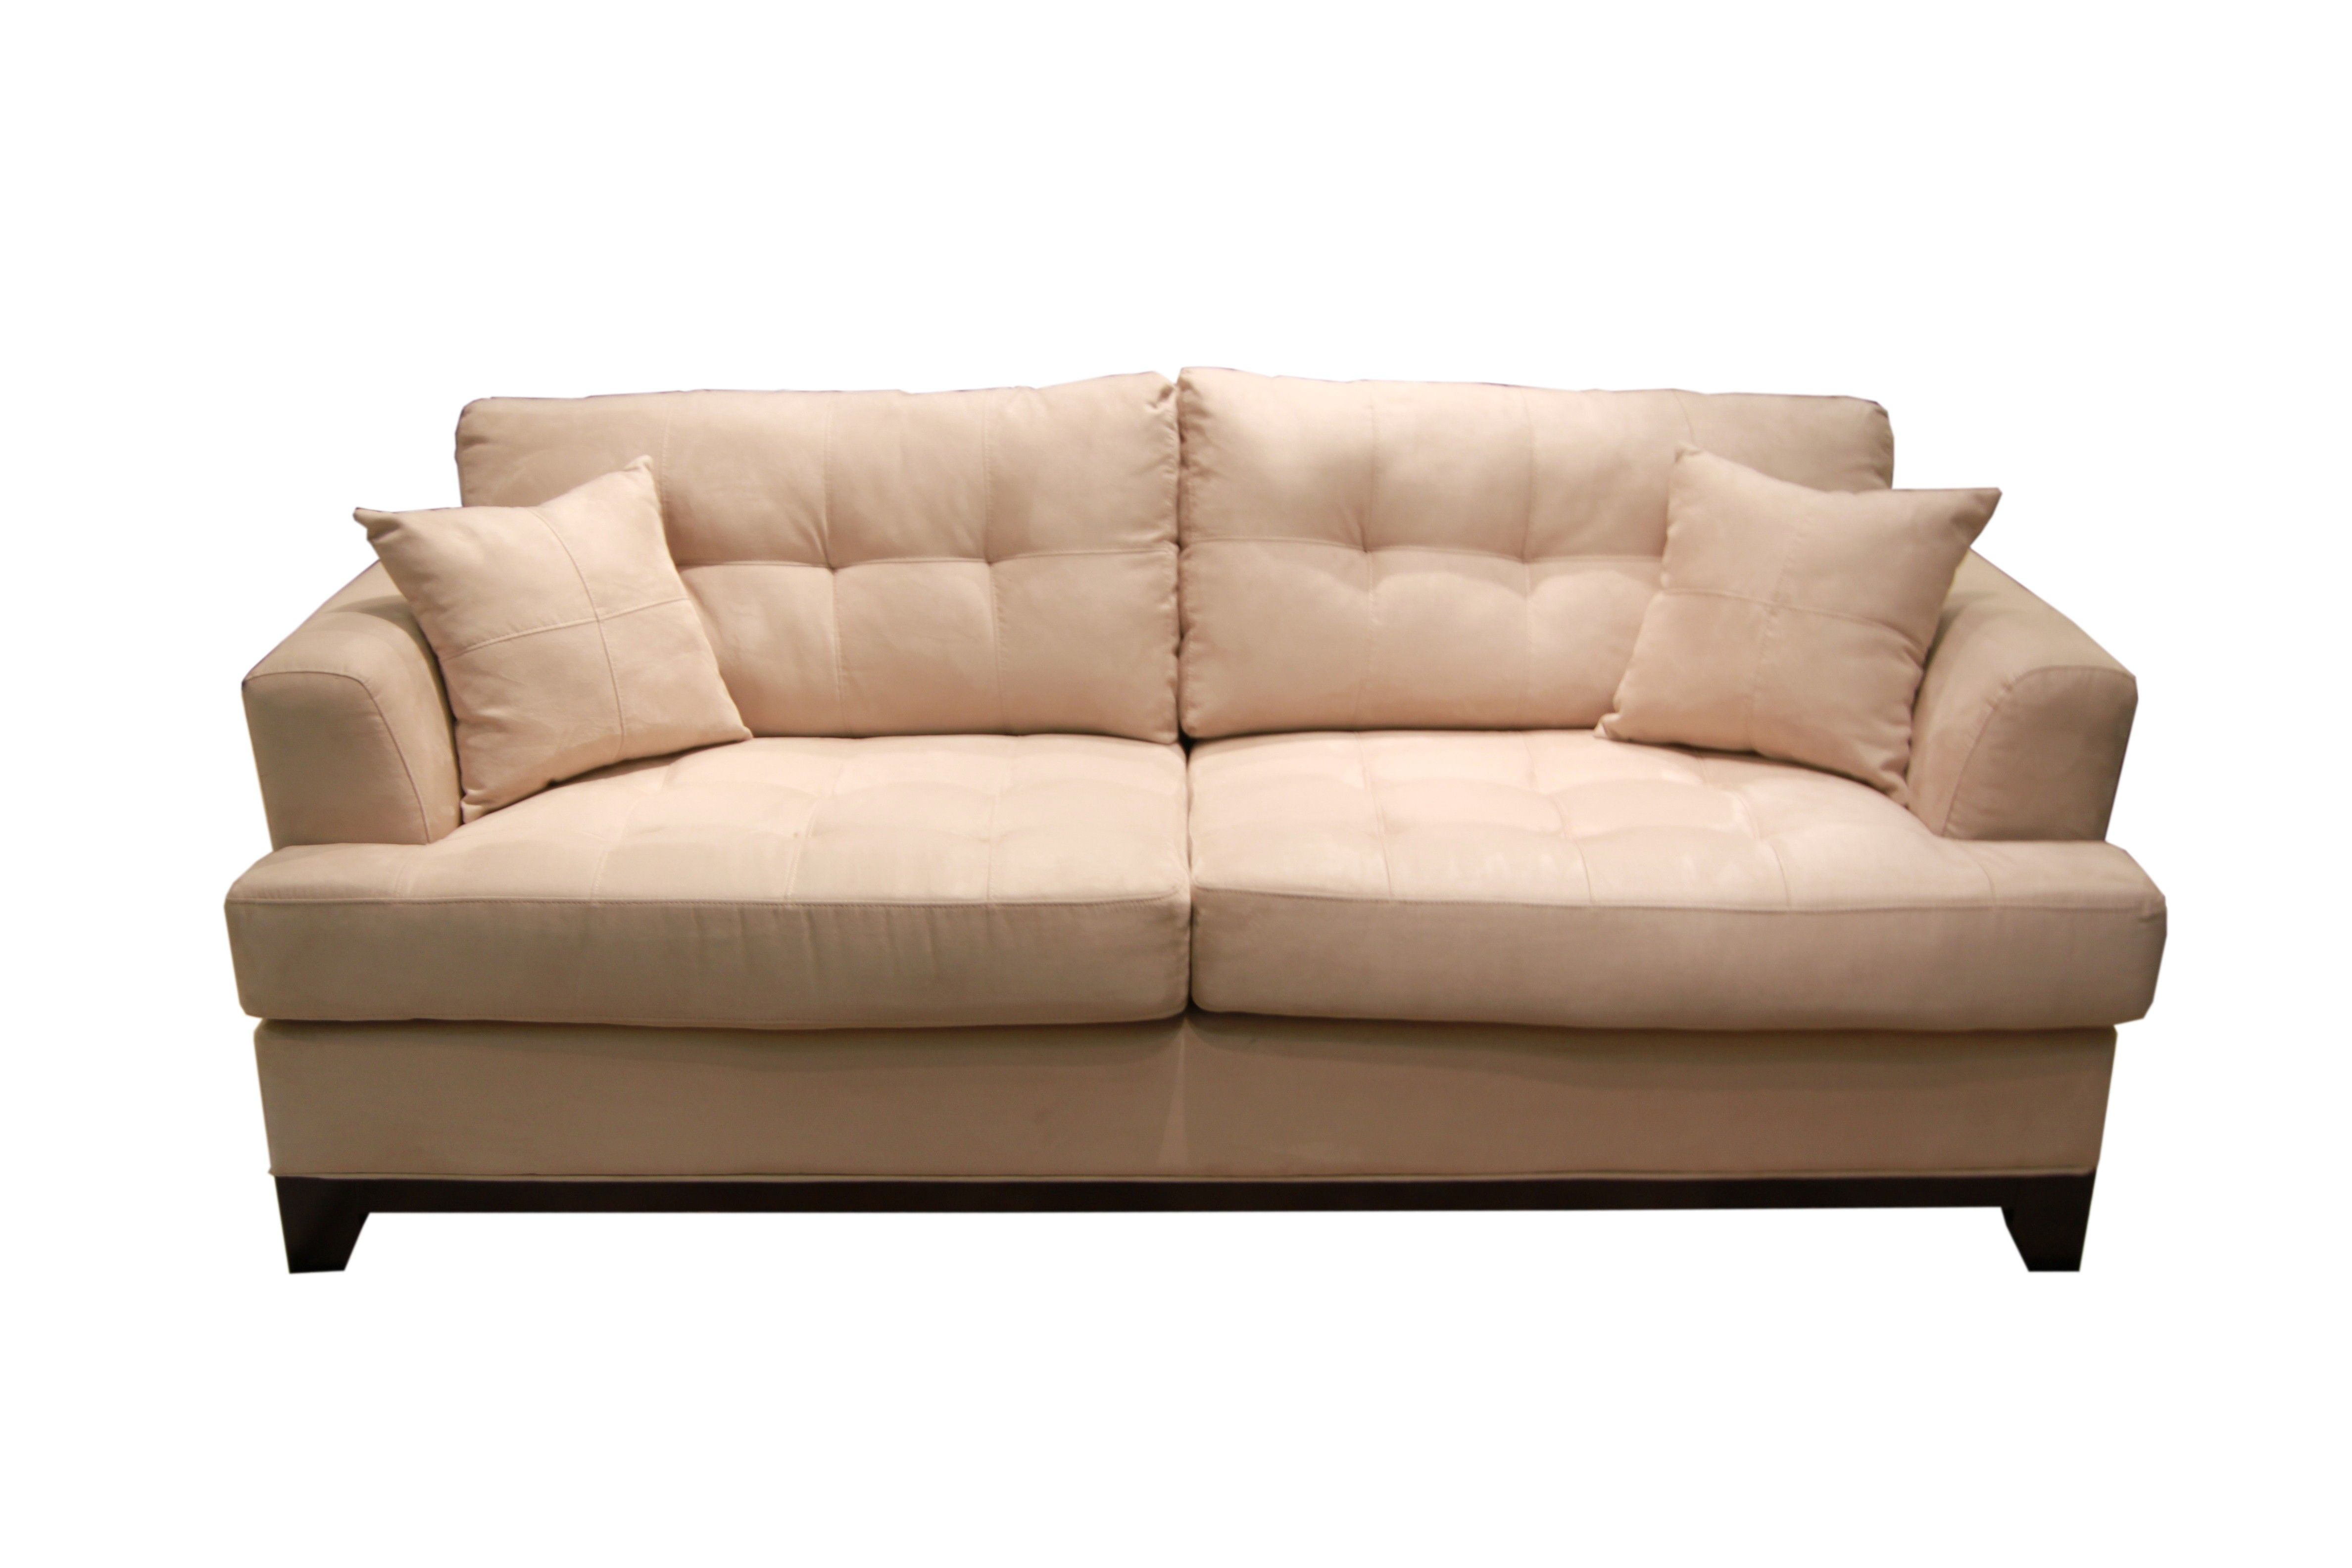 LARGO MANHATTAN CHAMOIS SOFA LIVING ROOM COUCH Gallery